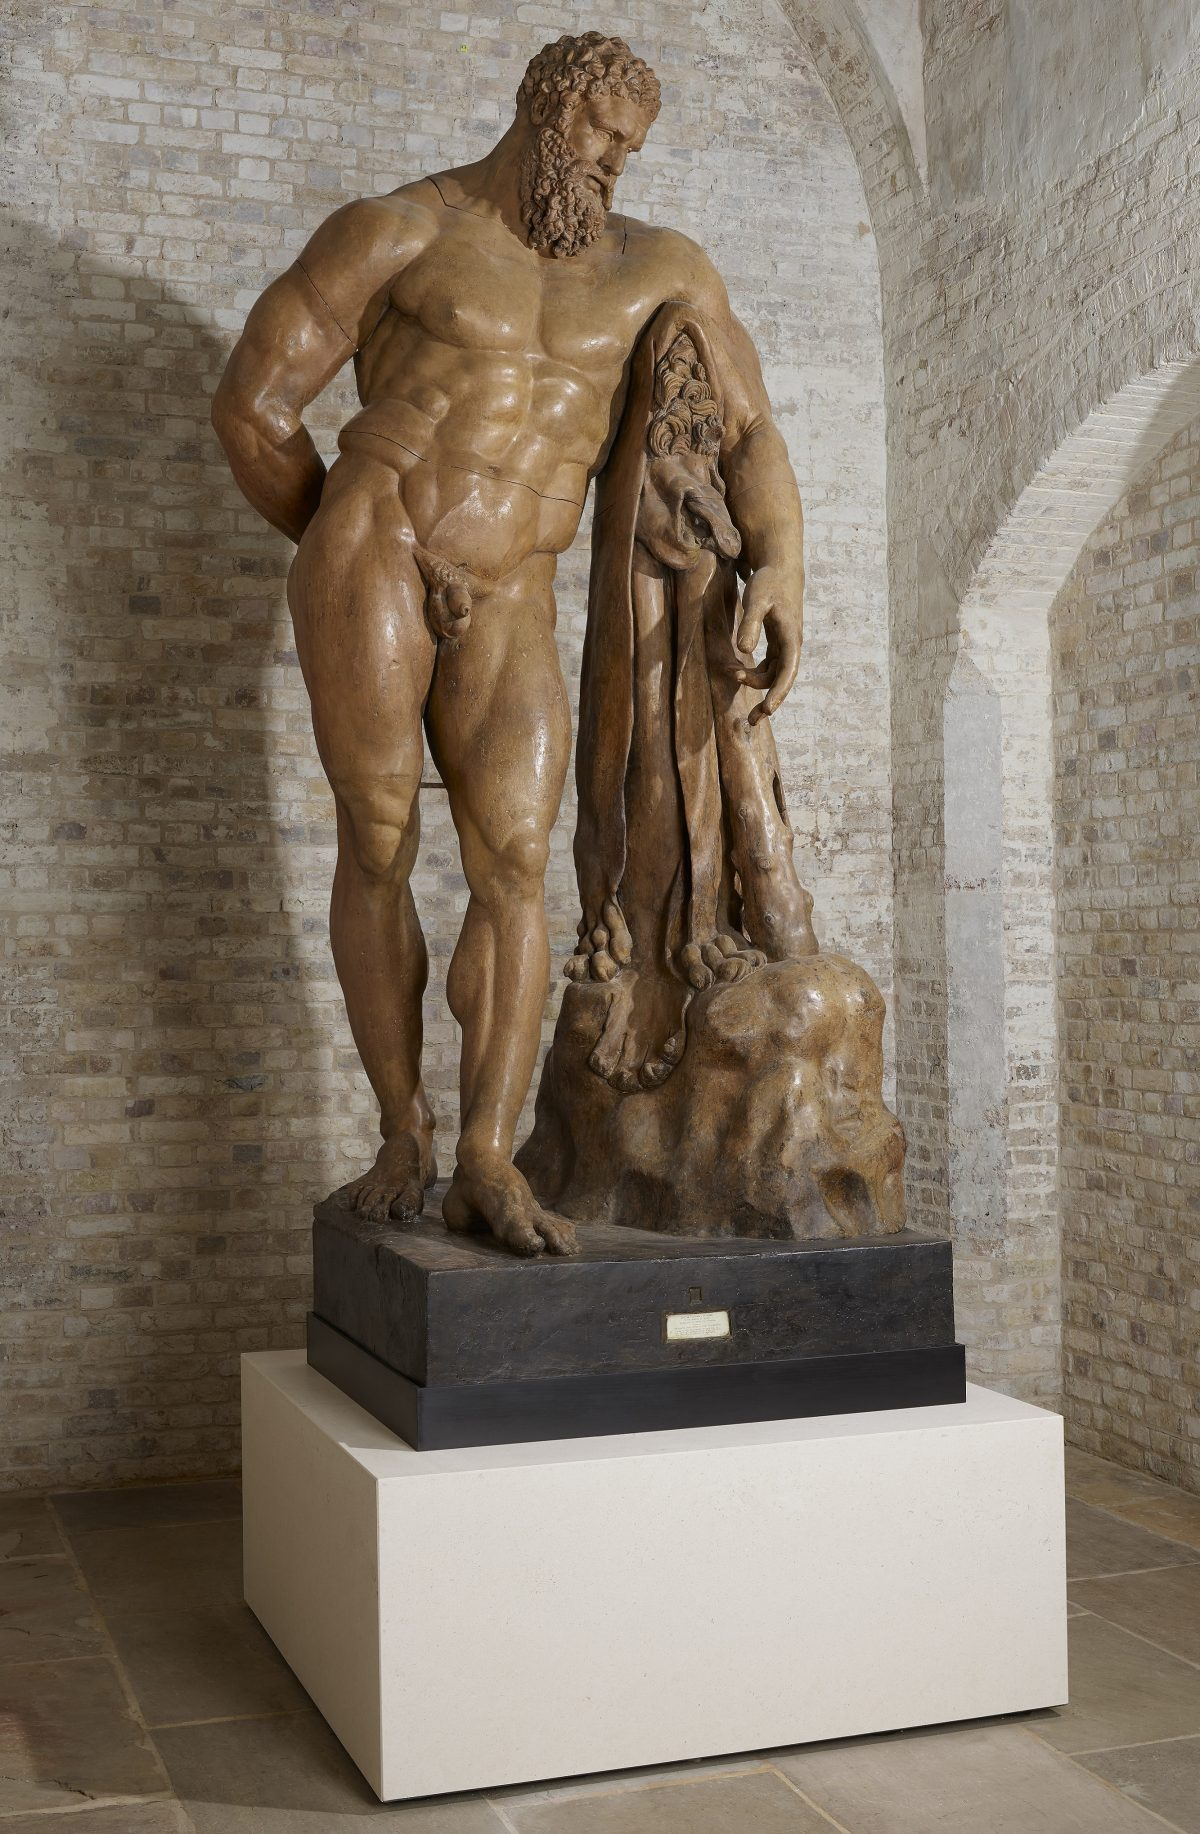 Hercules classic sculpture with Nemean lion